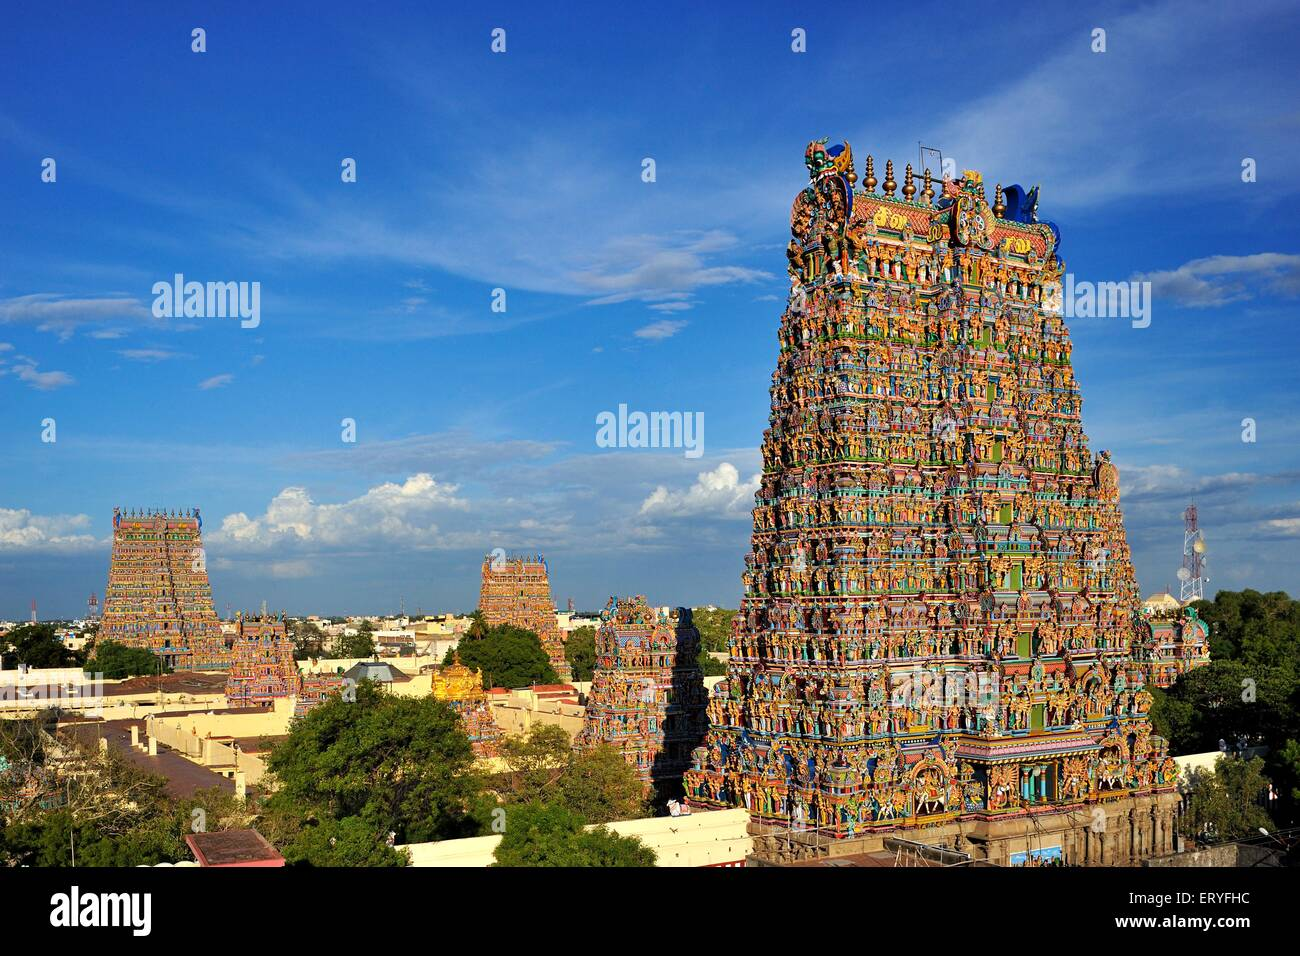 Meenakshi Sundareswarar or Meenakshi Amman Temple ; Madurai ; Tamil Nadu ; India Stock Photo